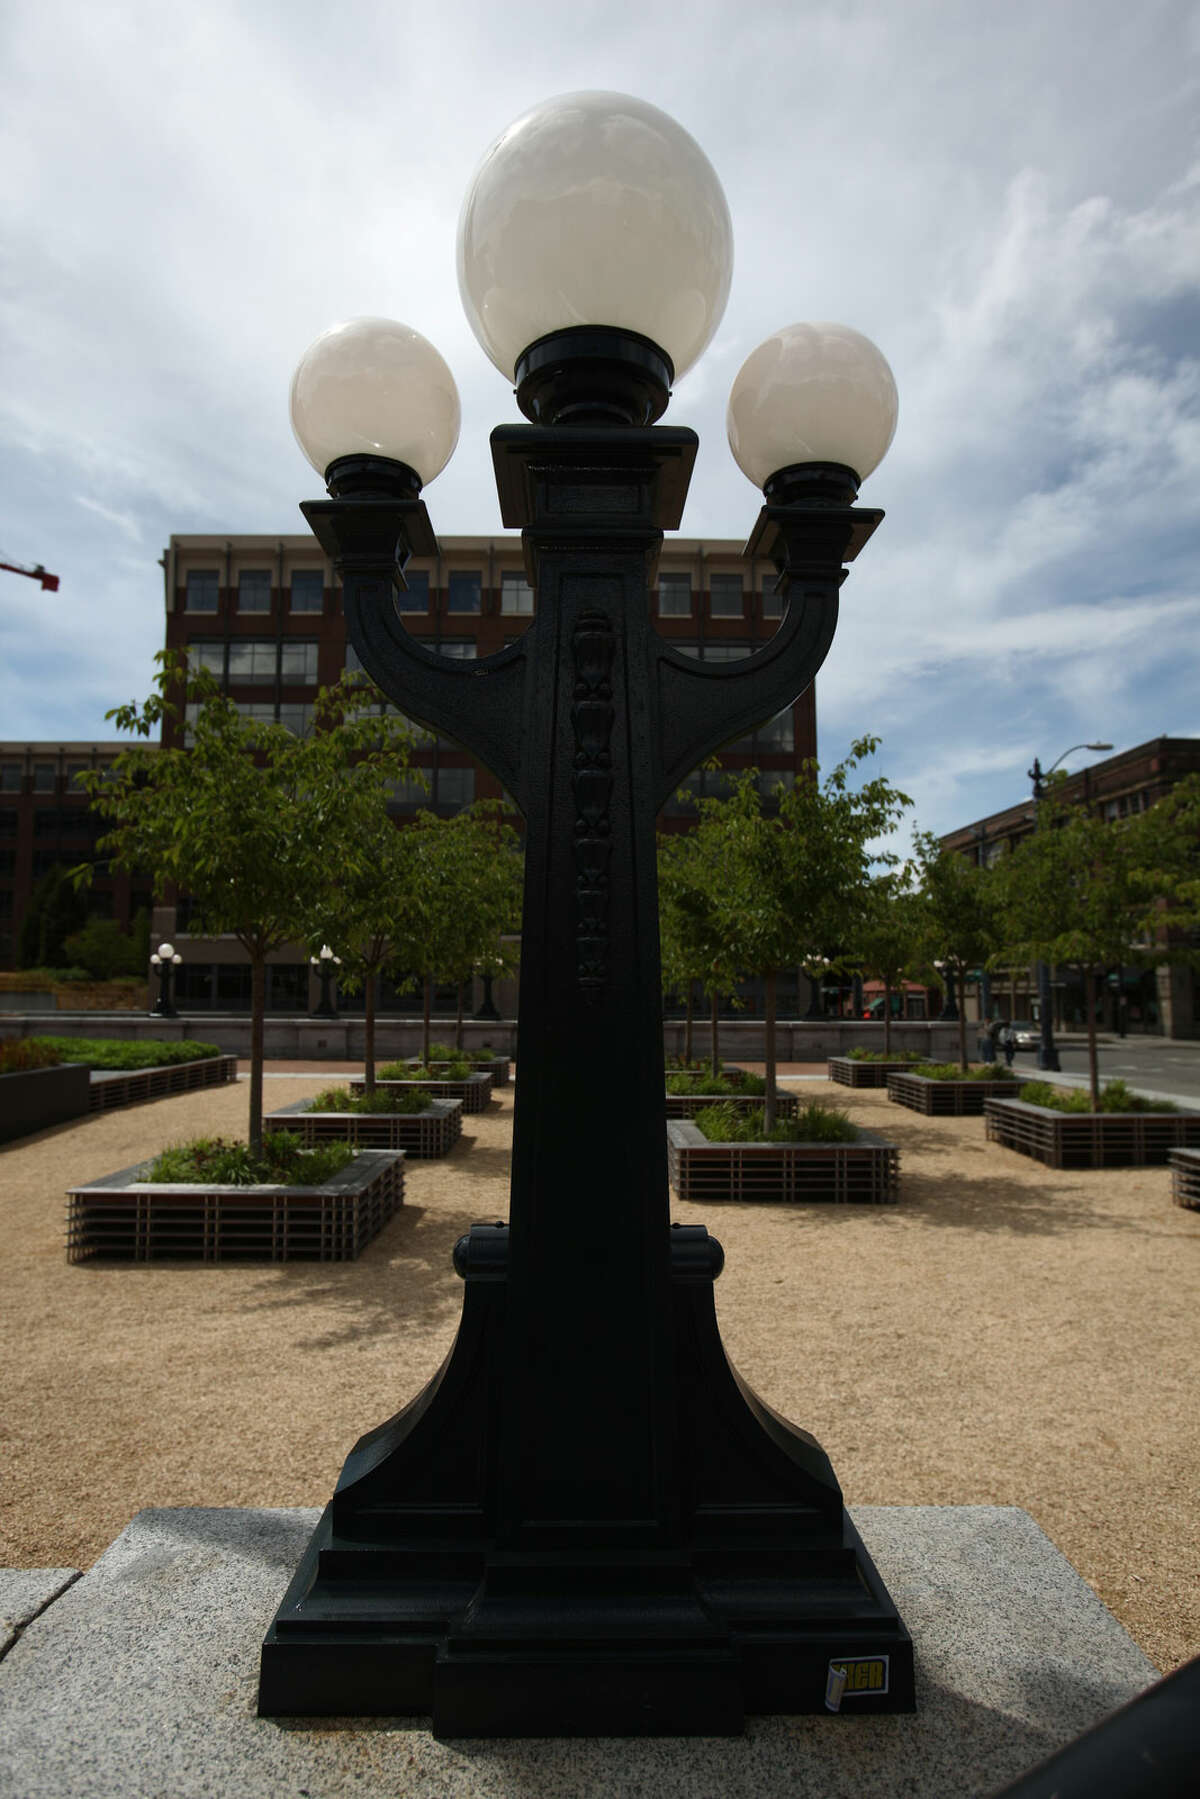 A new lamp post outside Seattle's King Street Station. The nickname? City workers call them